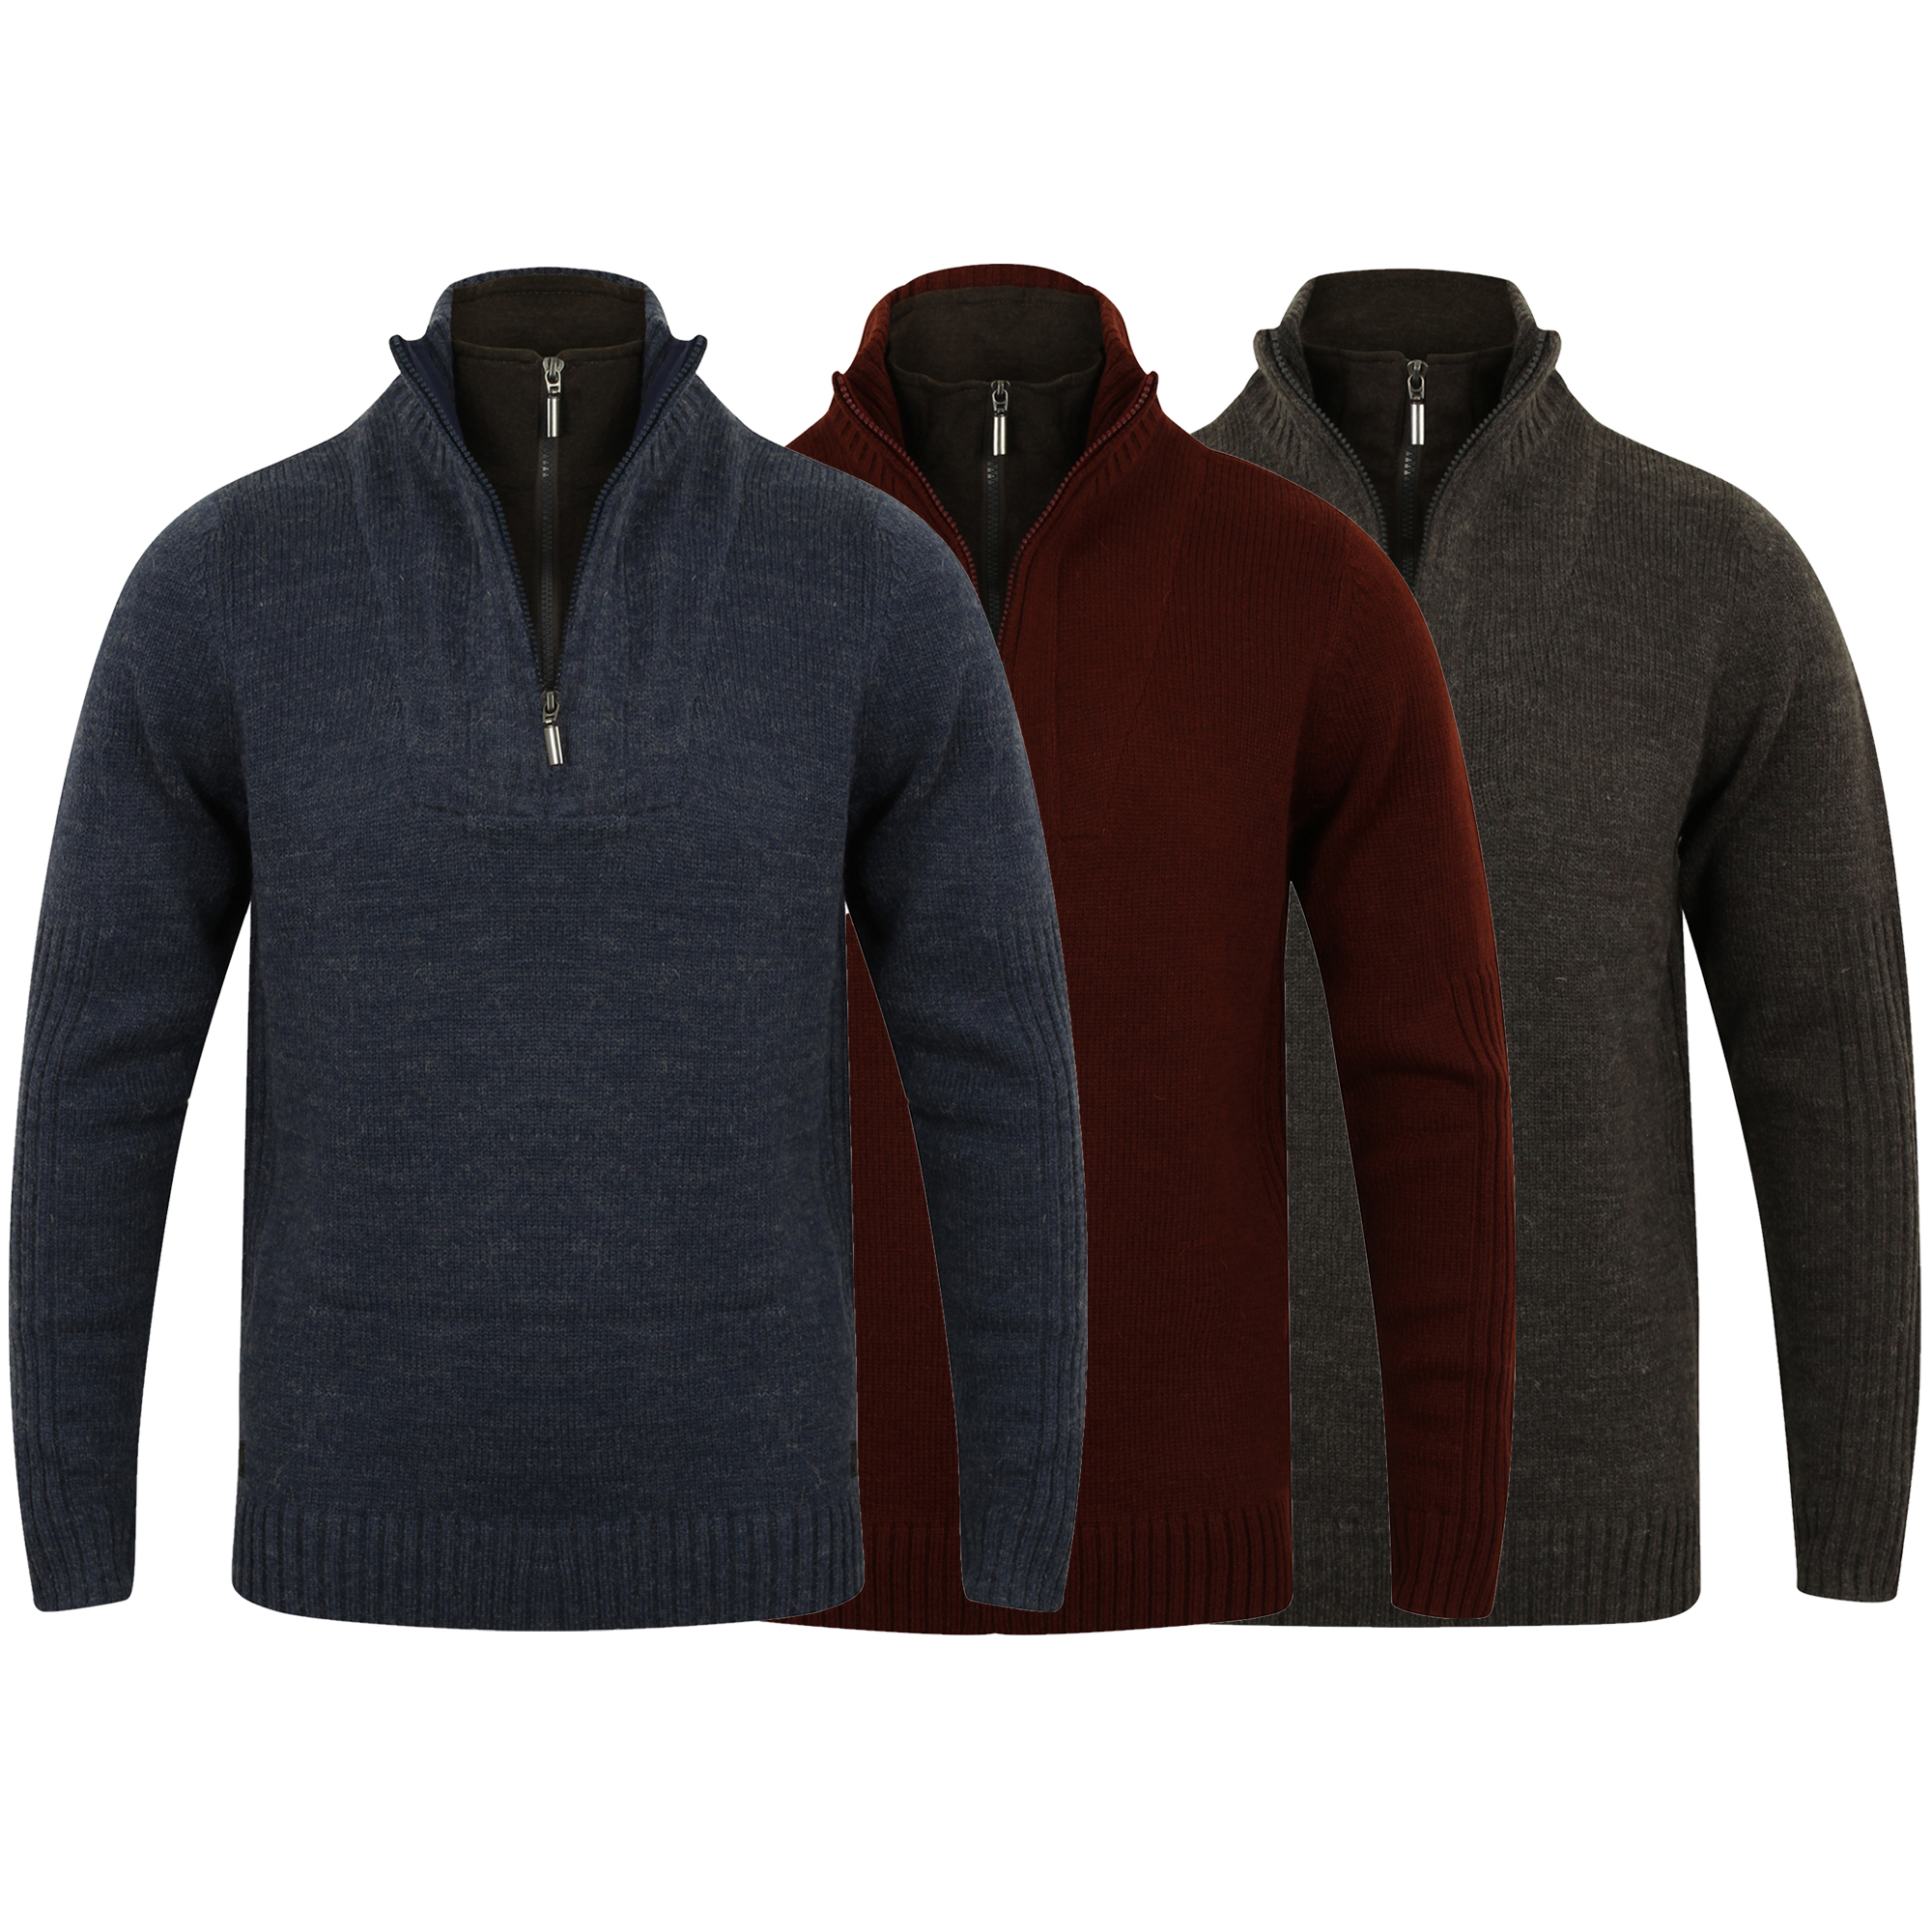 Mens-Wool-Mix-Knitted-Jumper-Dissident-Double-Layer-Funnel-Neck-Pullover-Sweater thumbnail 4